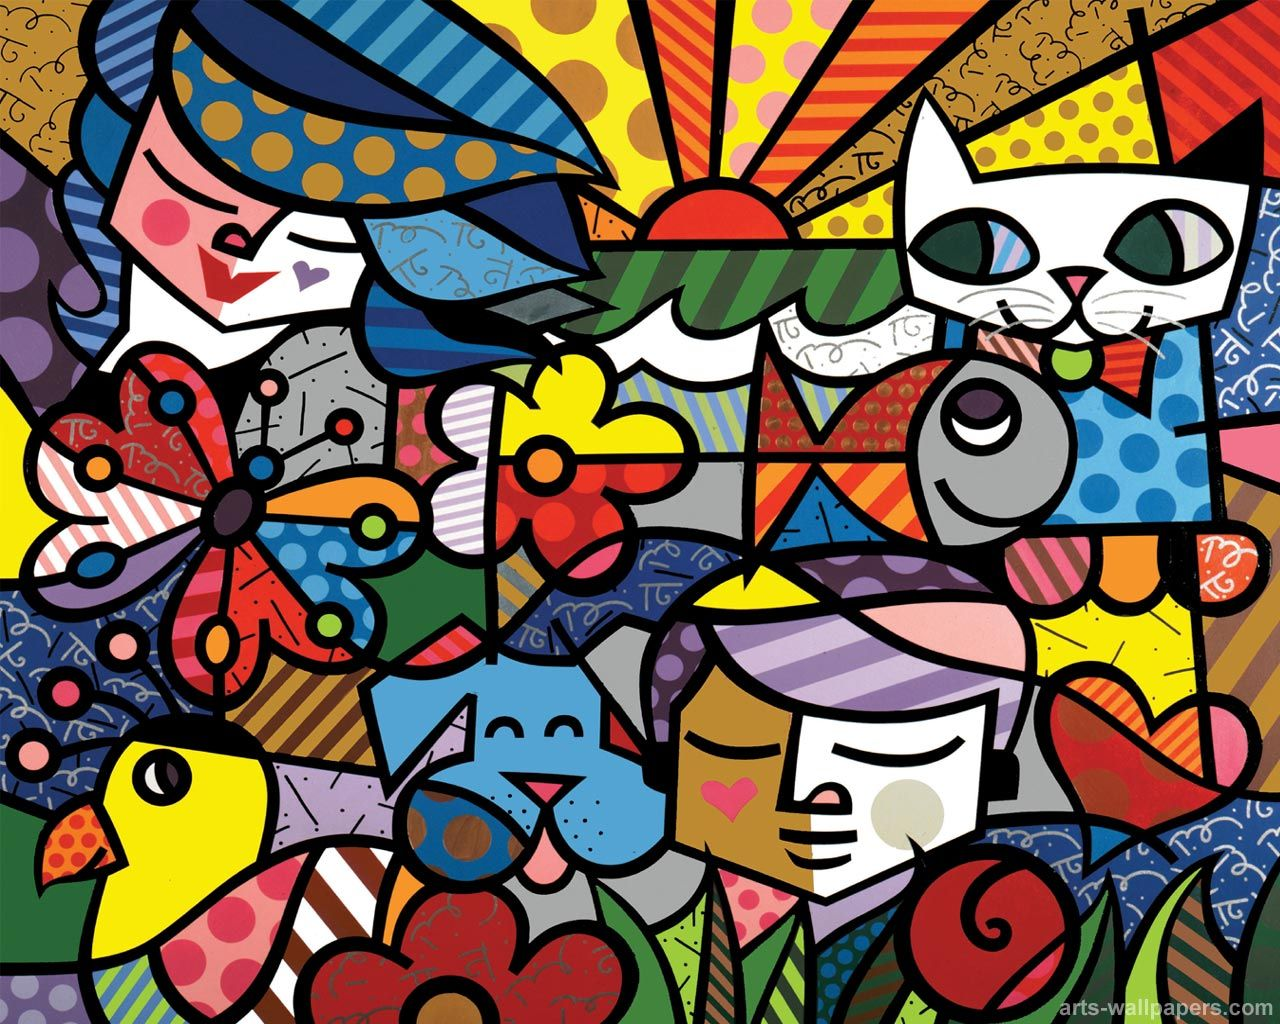 28 best images about Art: Romero Britto on Pinterest | Happy, Hand ...